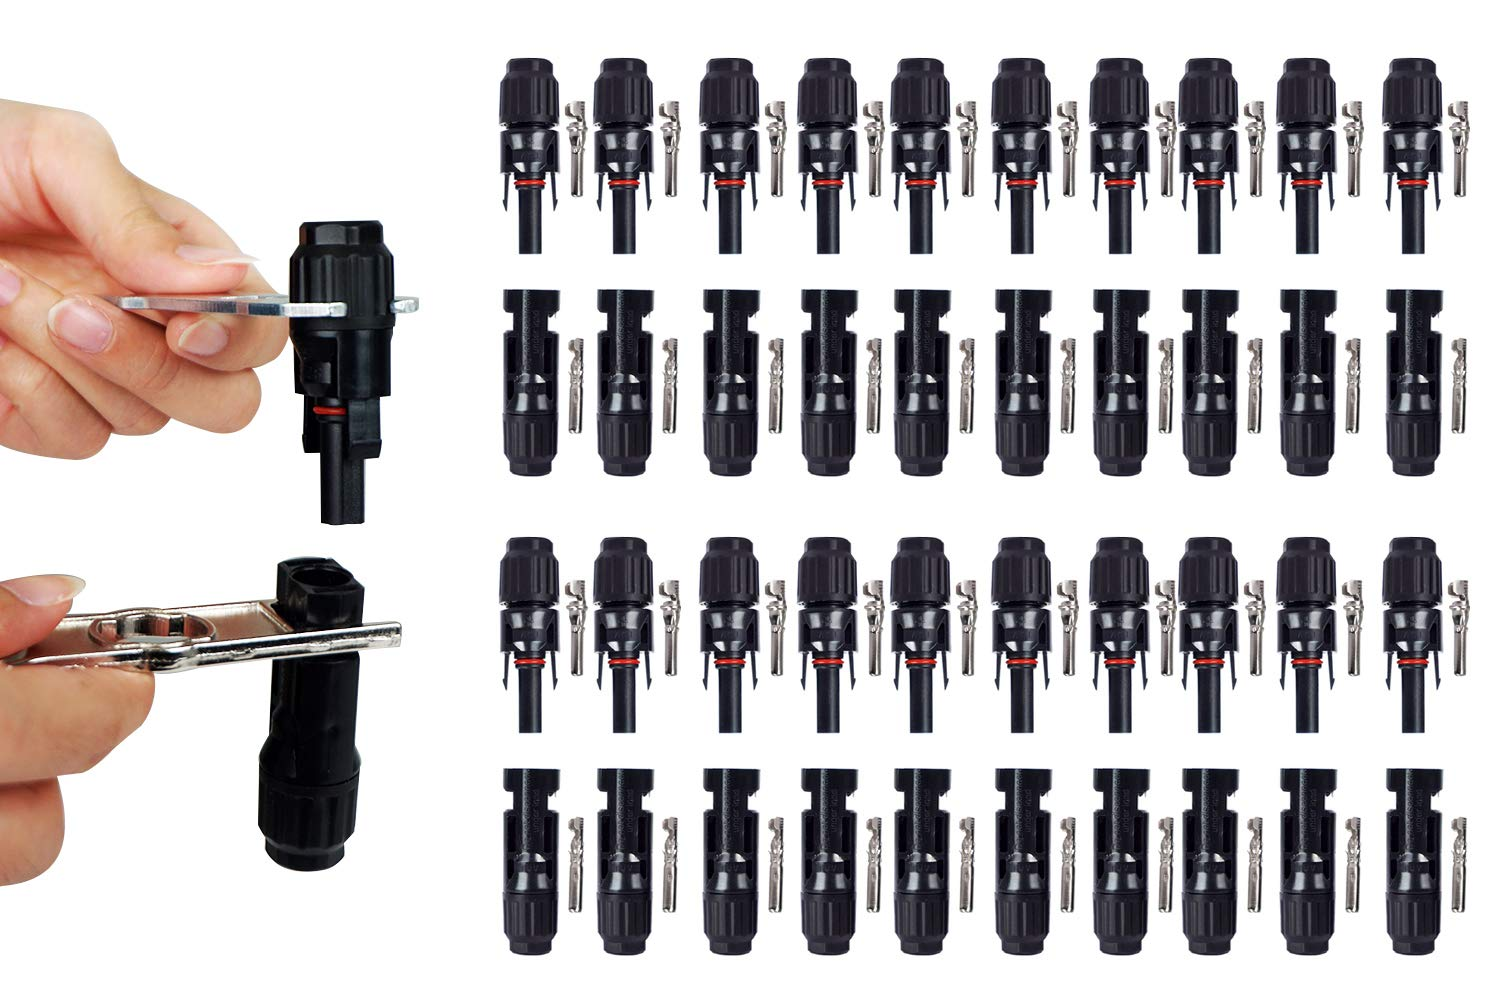 ECO LLC 1 Pair of MC4 Assembly Tool with 20 Pairs of Waterproof MC4 Solar Cable Connectors by ECO LLC (Image #9)